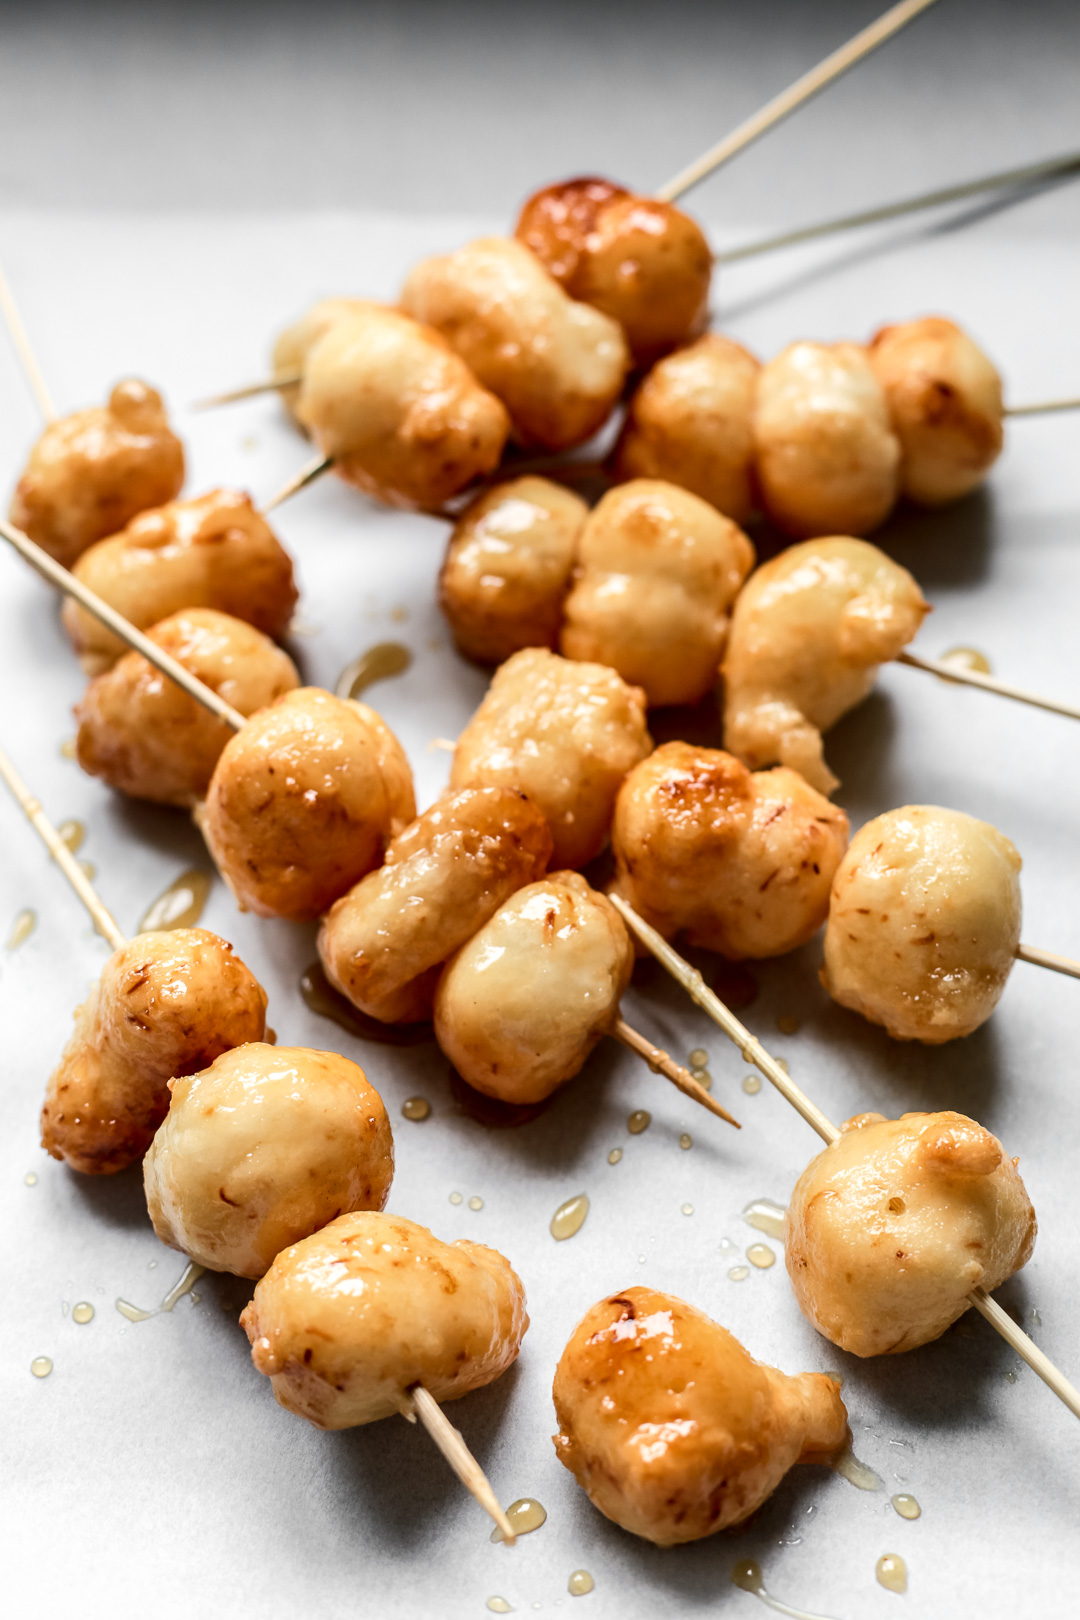 Karioka ang sarap karioka or carioca is a type of street food in the philippines made out of glutinous rice flour and coconut meat which is deep fried then dipped in coconut ccuart Images